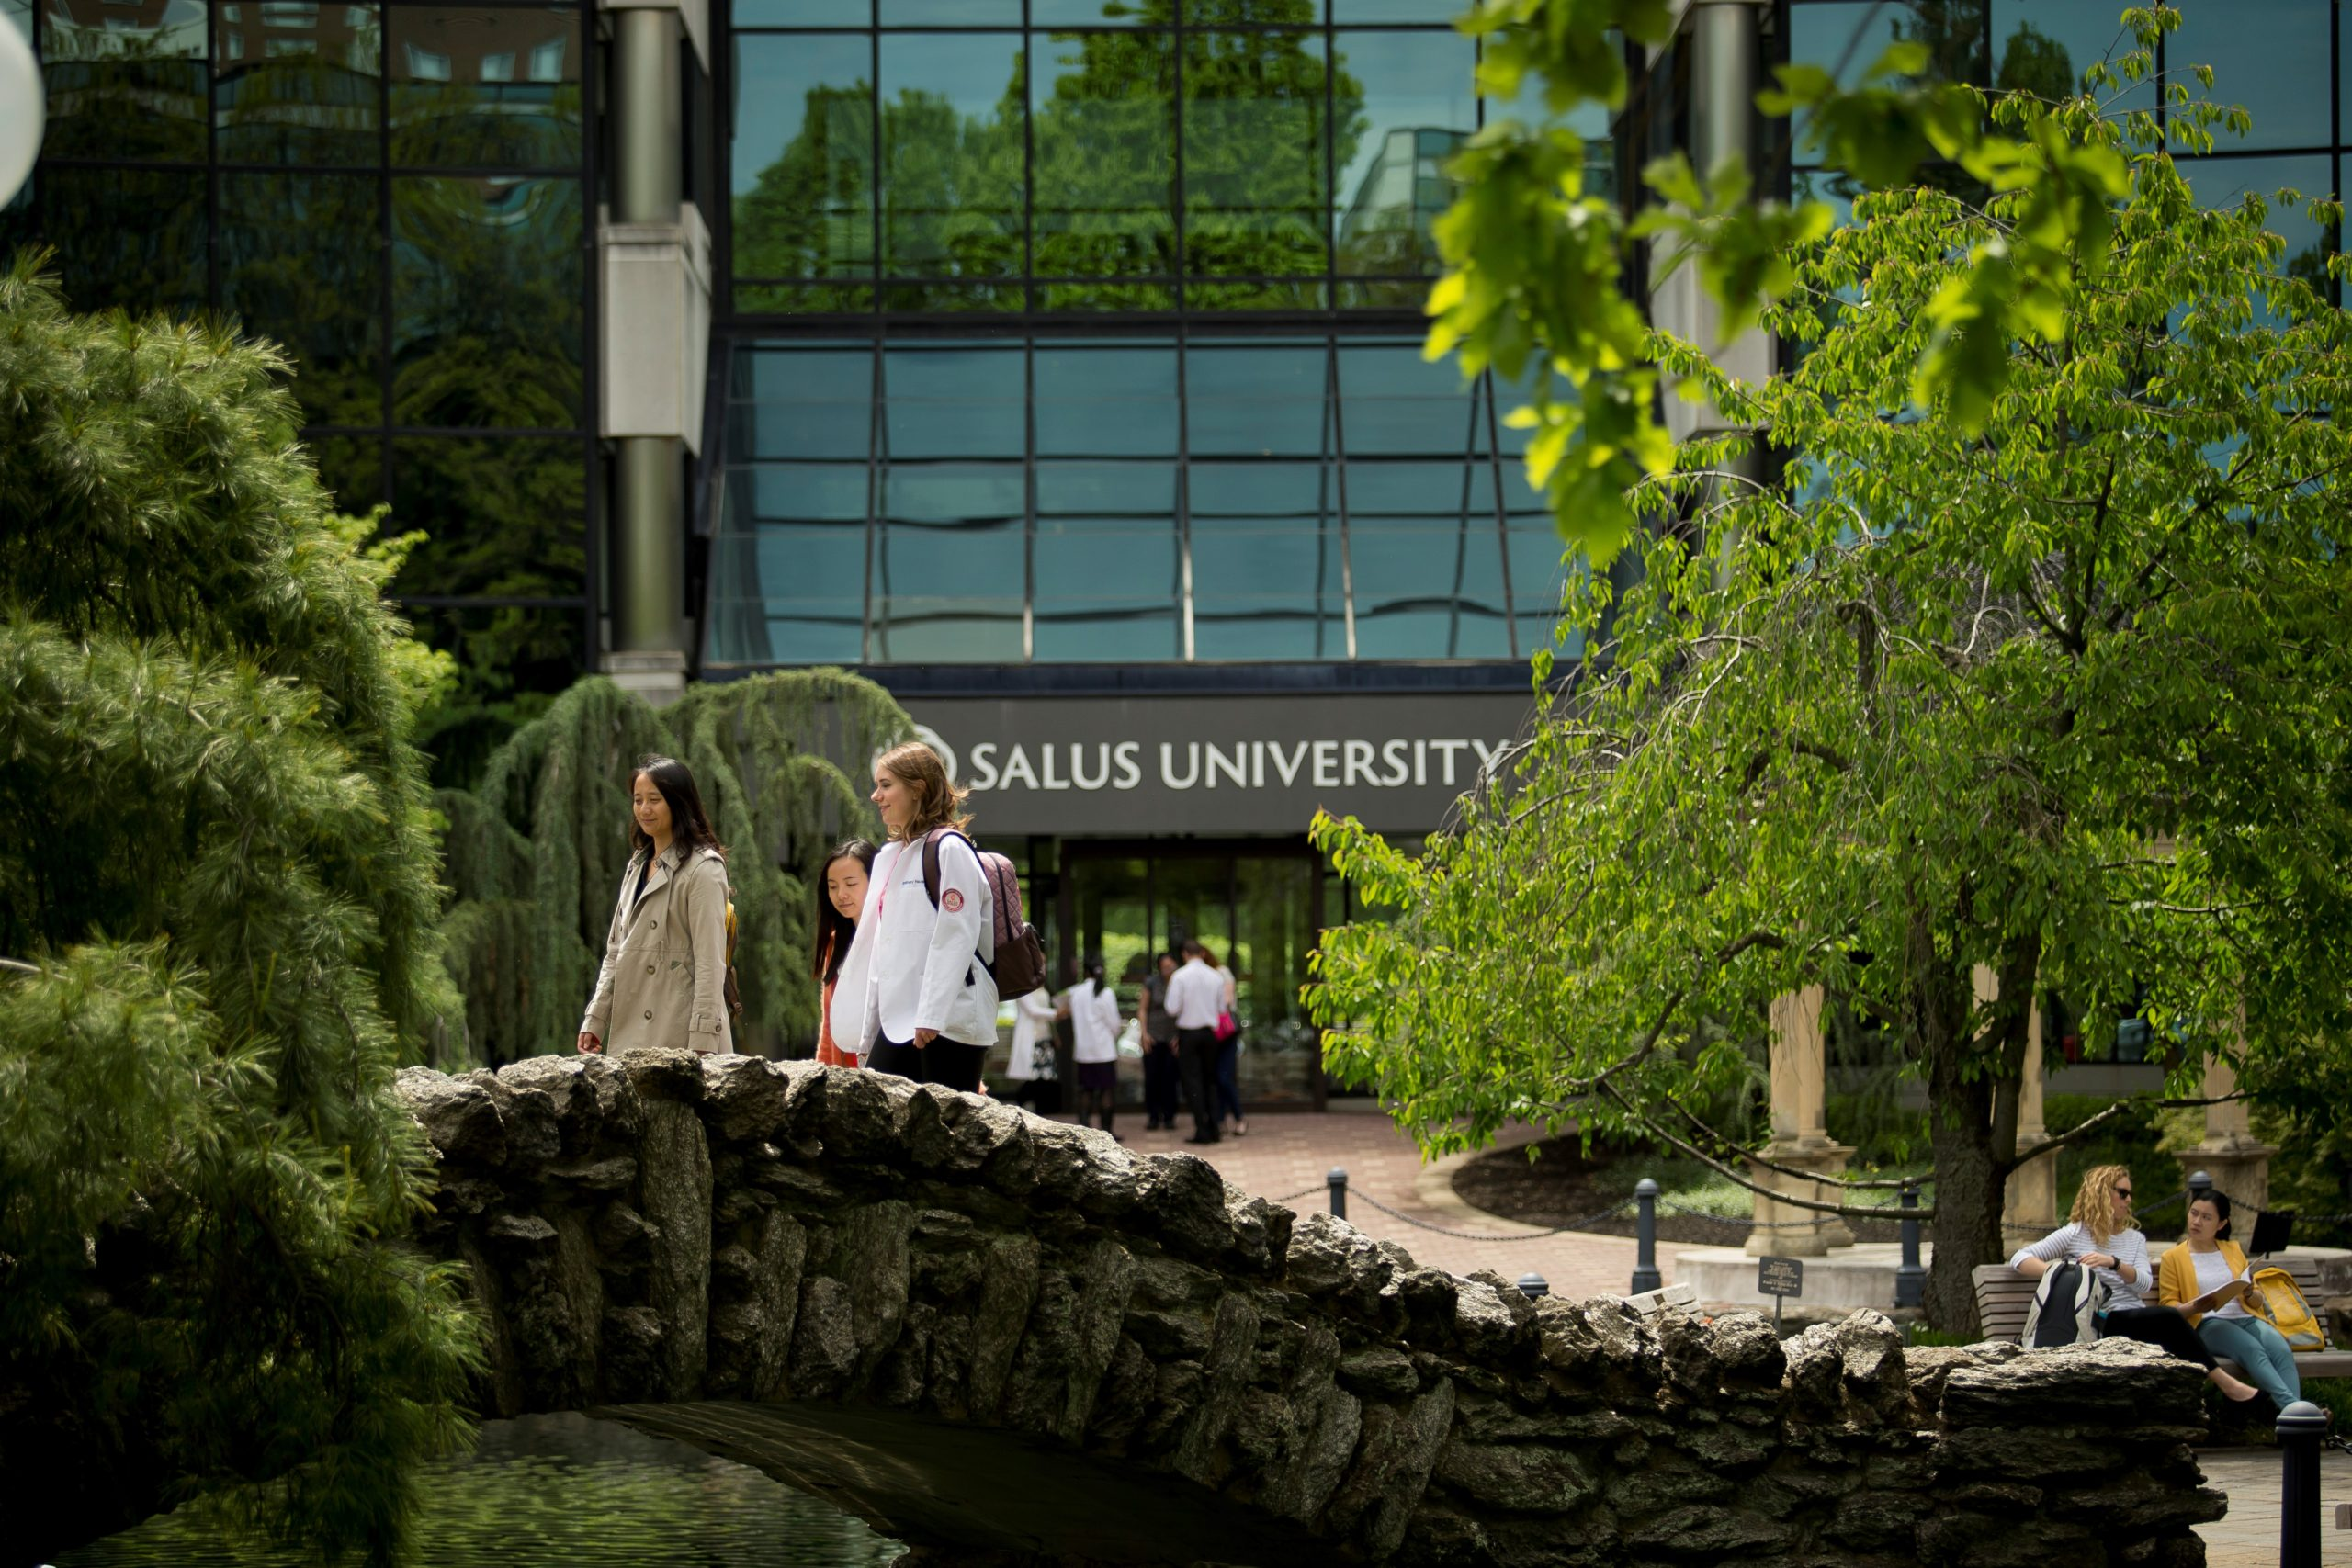 Salus University Sets Safety Strategy, Ready to Resume On-Campus Operations